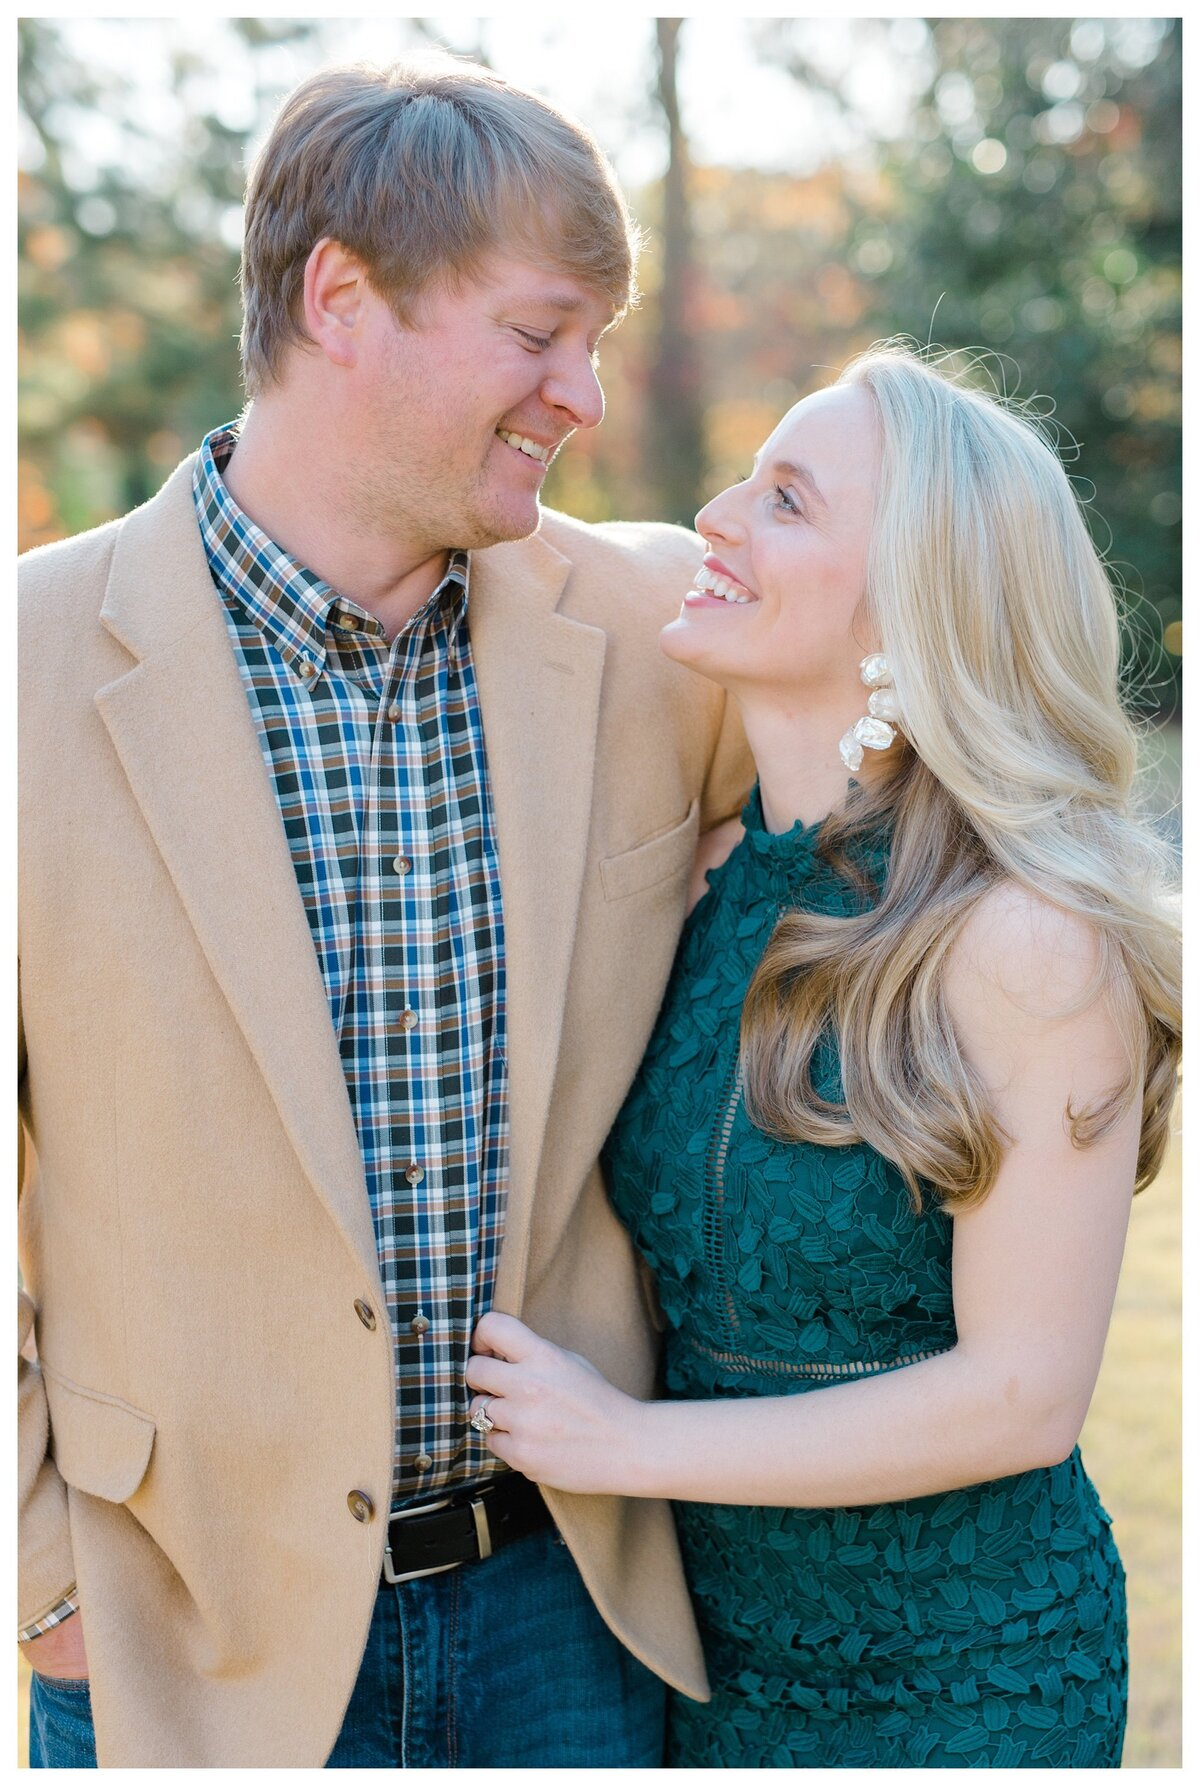 canady-engagements-atlanta-wedding-photographer-02